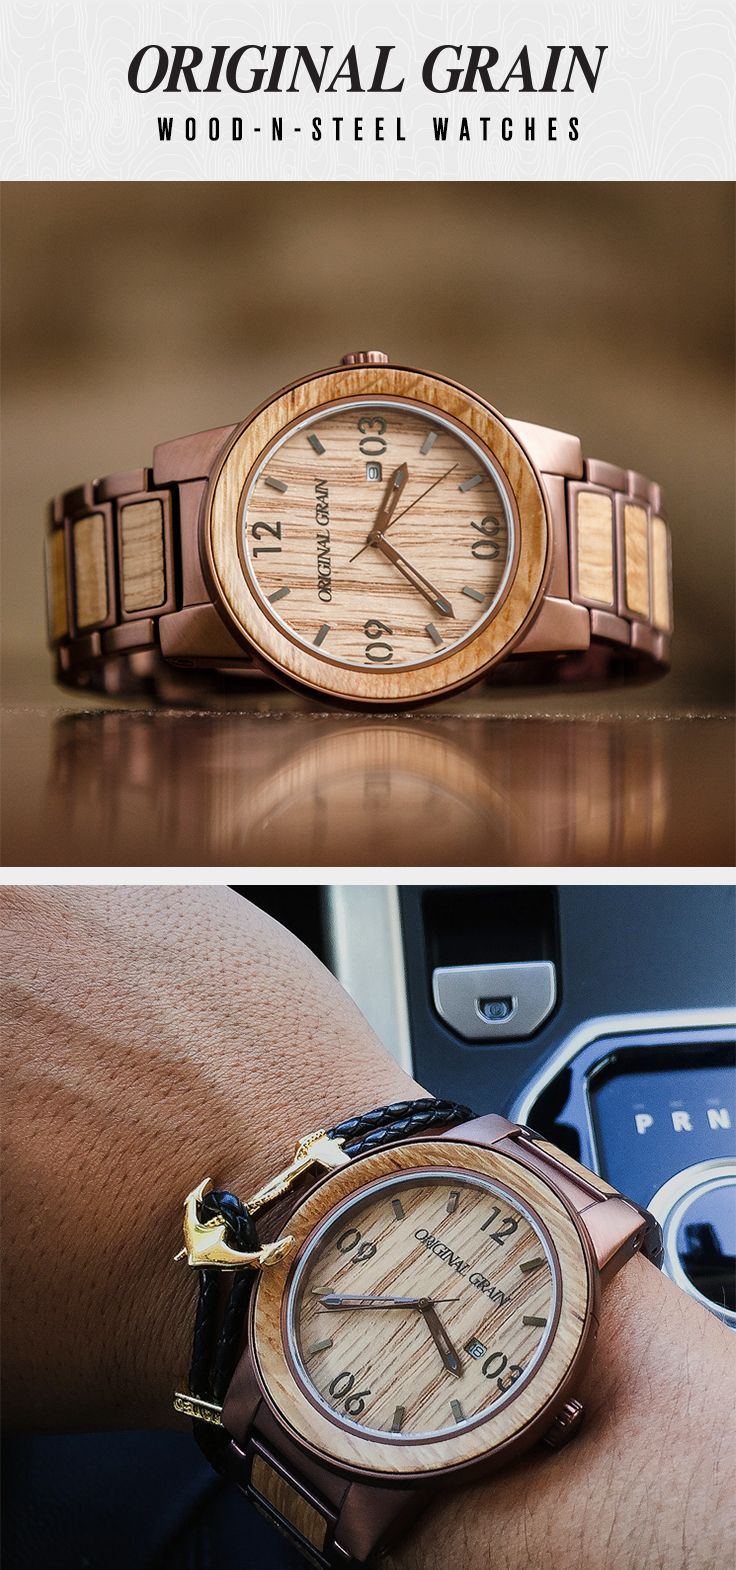 The Whiskey Watch - Handcrafted from authentic American Oak Whiskey Barrels and Espresso Steel. Quality watches at an affordable price + free shipping worldwide!